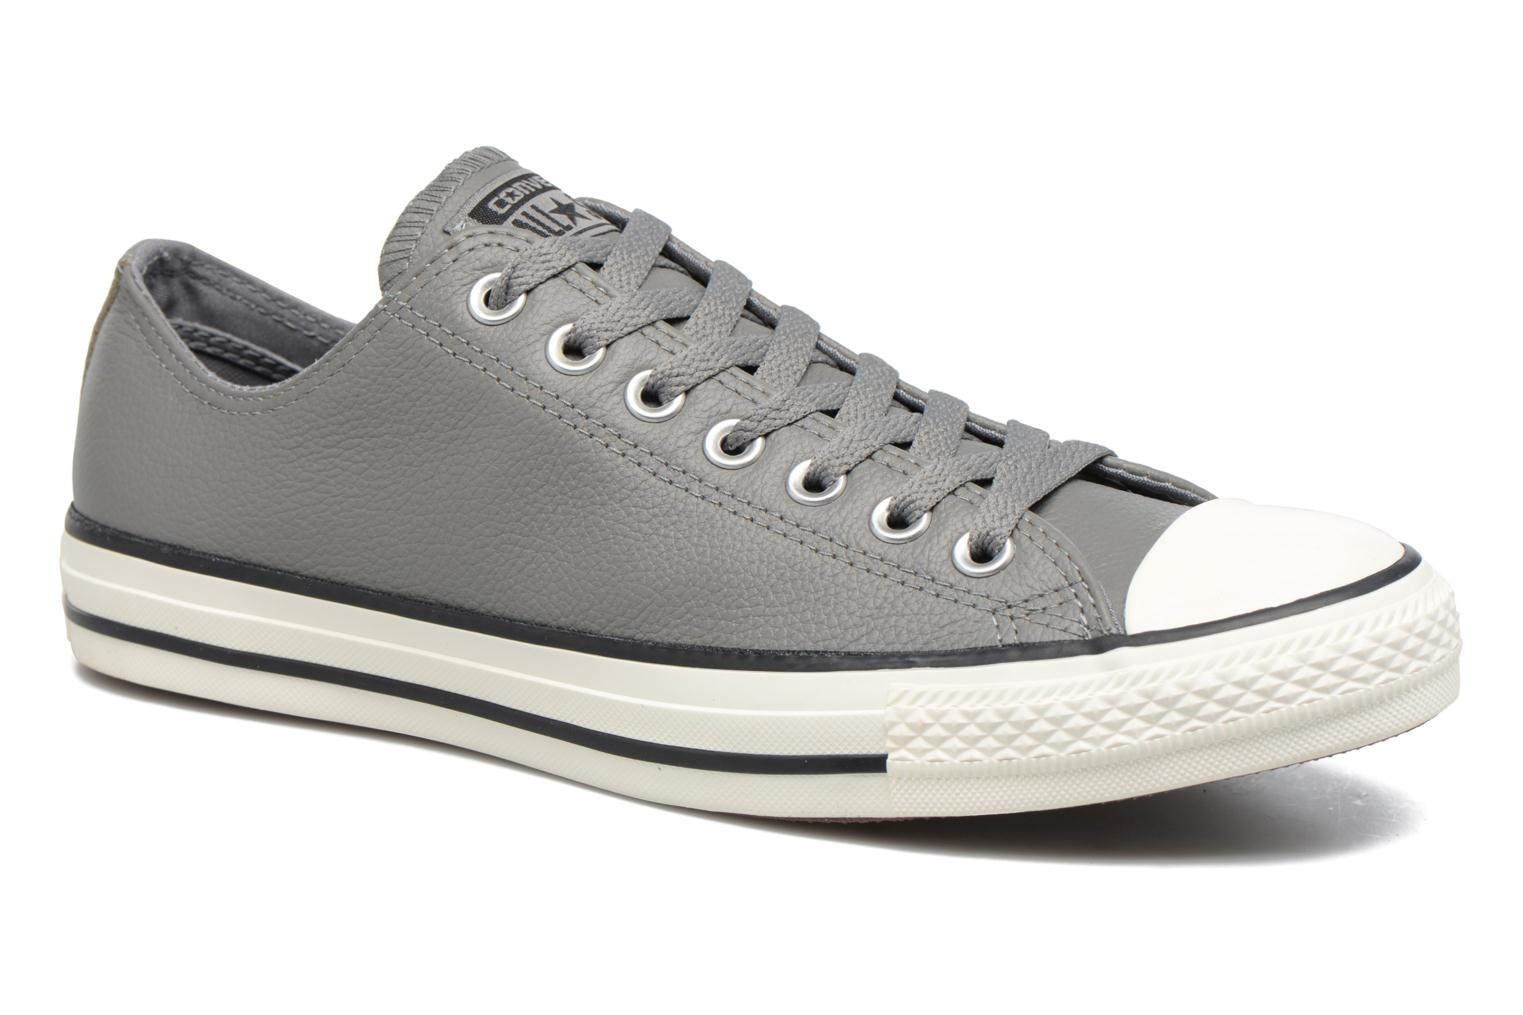 Baskets Converse Chuck Taylor All Star Tumble Leather Ox Gris vue détail/paire